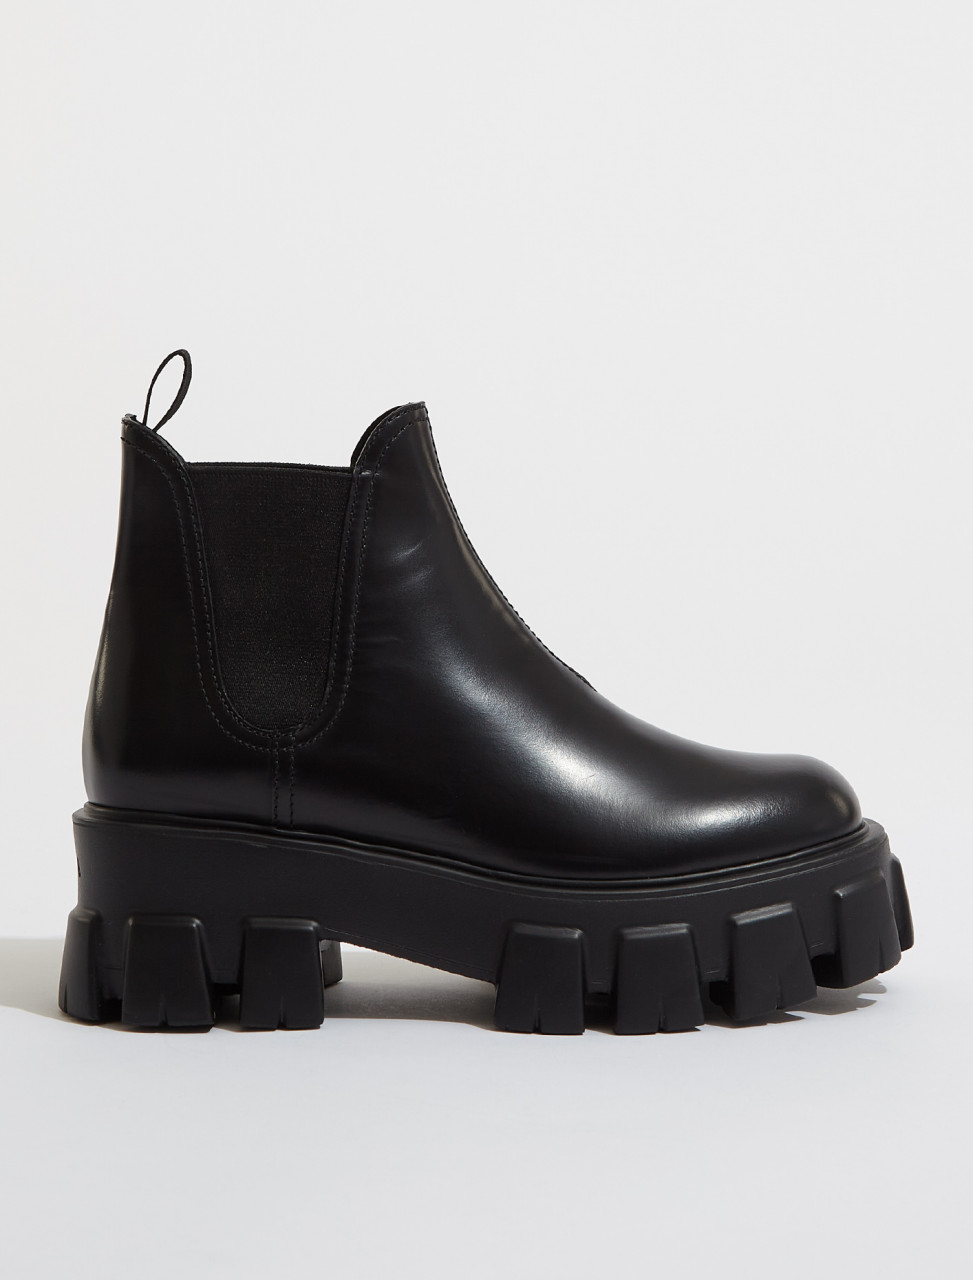 1T725L_B4L_F0002 PRADA MONOLITH BRUSHED LEATHER BOOTIES IN BLACK